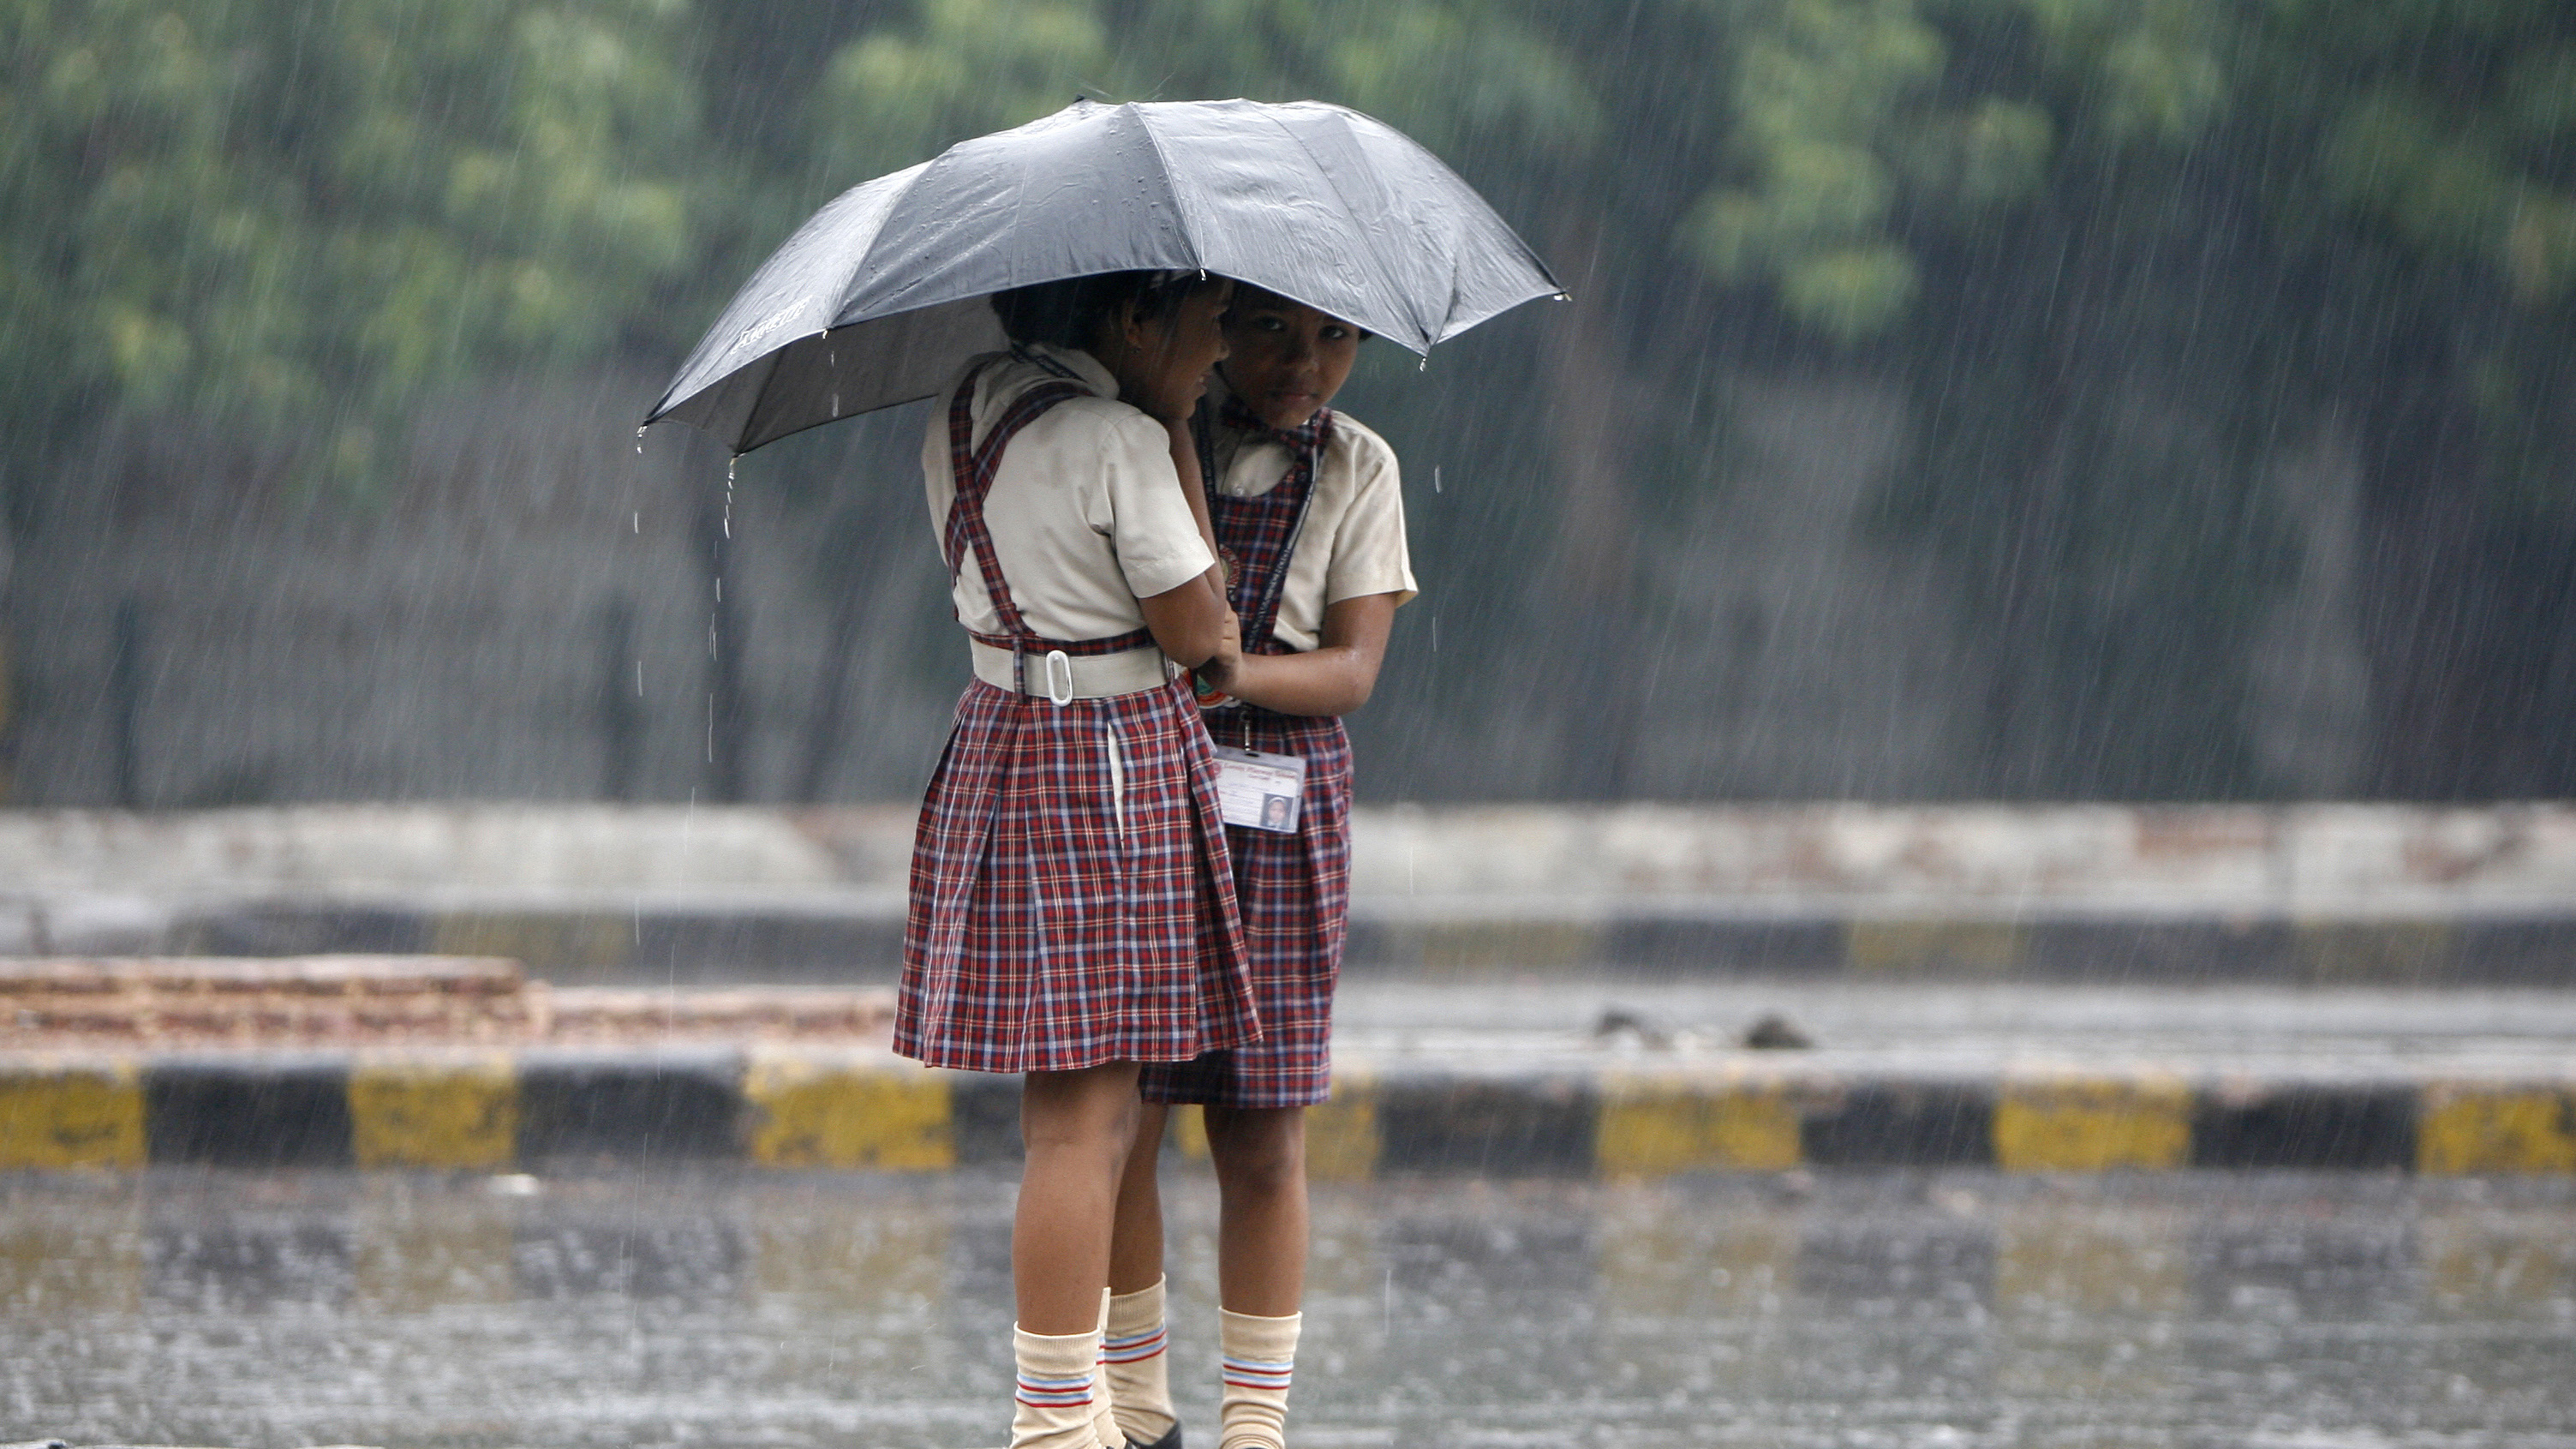 monsoon strengthen kerela within 2 days collector declared holiday for ernakulam idukki educational institutions schools declared holiday in tvm